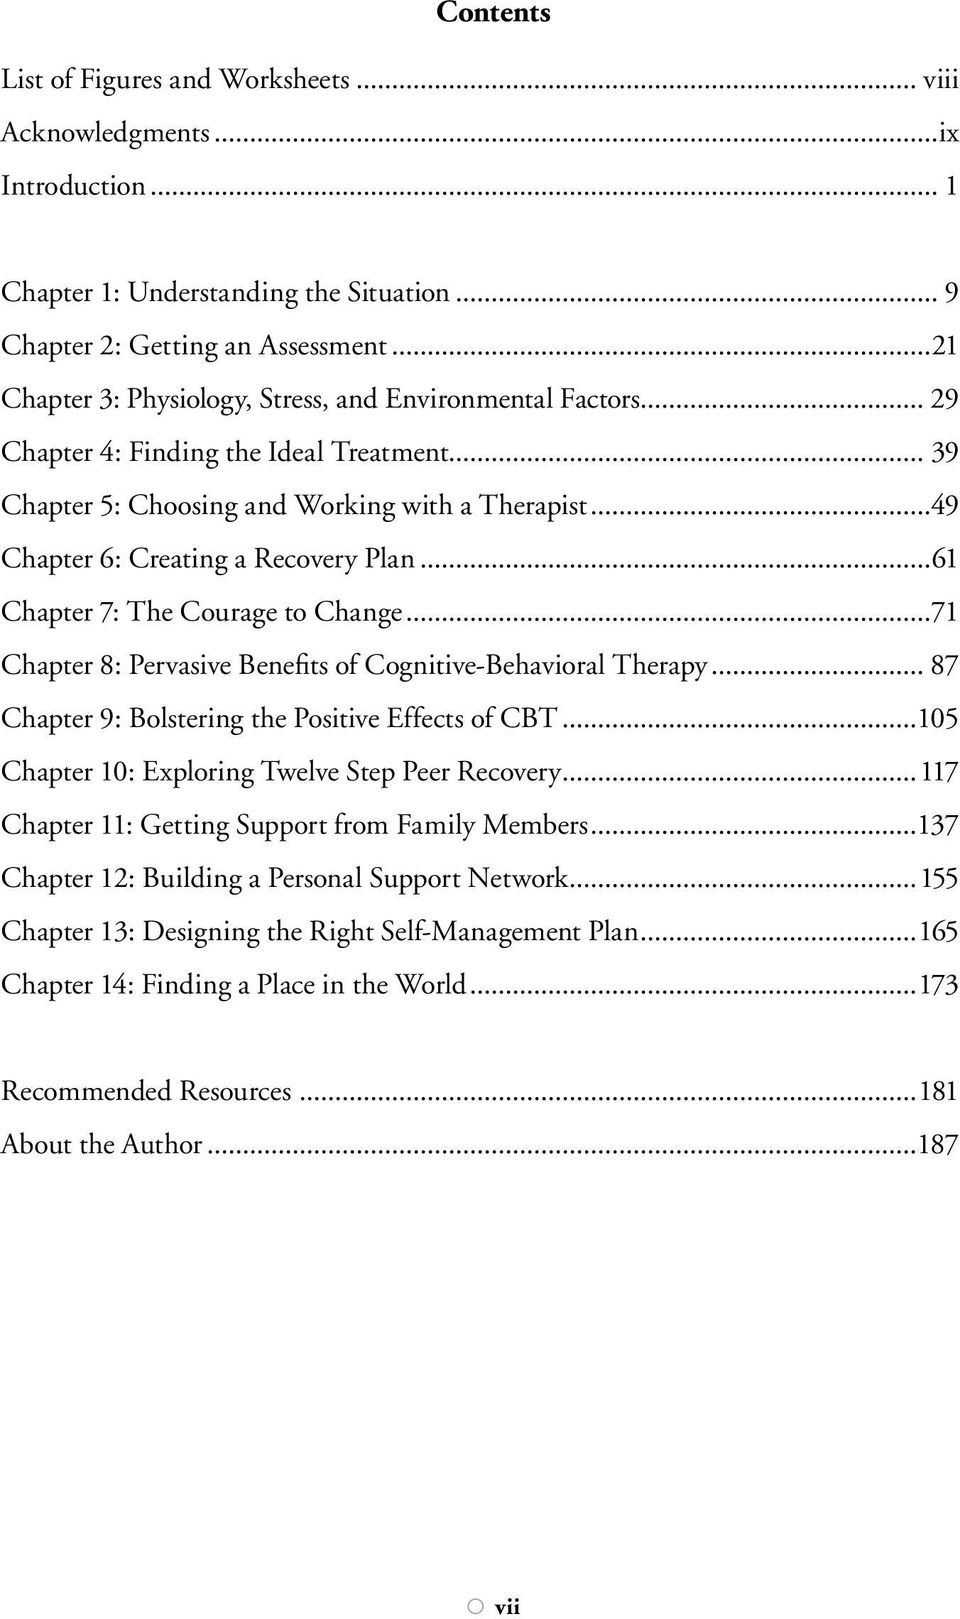 ..49 Chapter 6: Creating a Recovery Plan...61 Chapter 7: The Courage to Change...71 Chapter 8: Pervasive Benefits of Cognitive-Behavioral Therapy... 87 Chapter 9: Bolstering the Positive Effects of CBT.